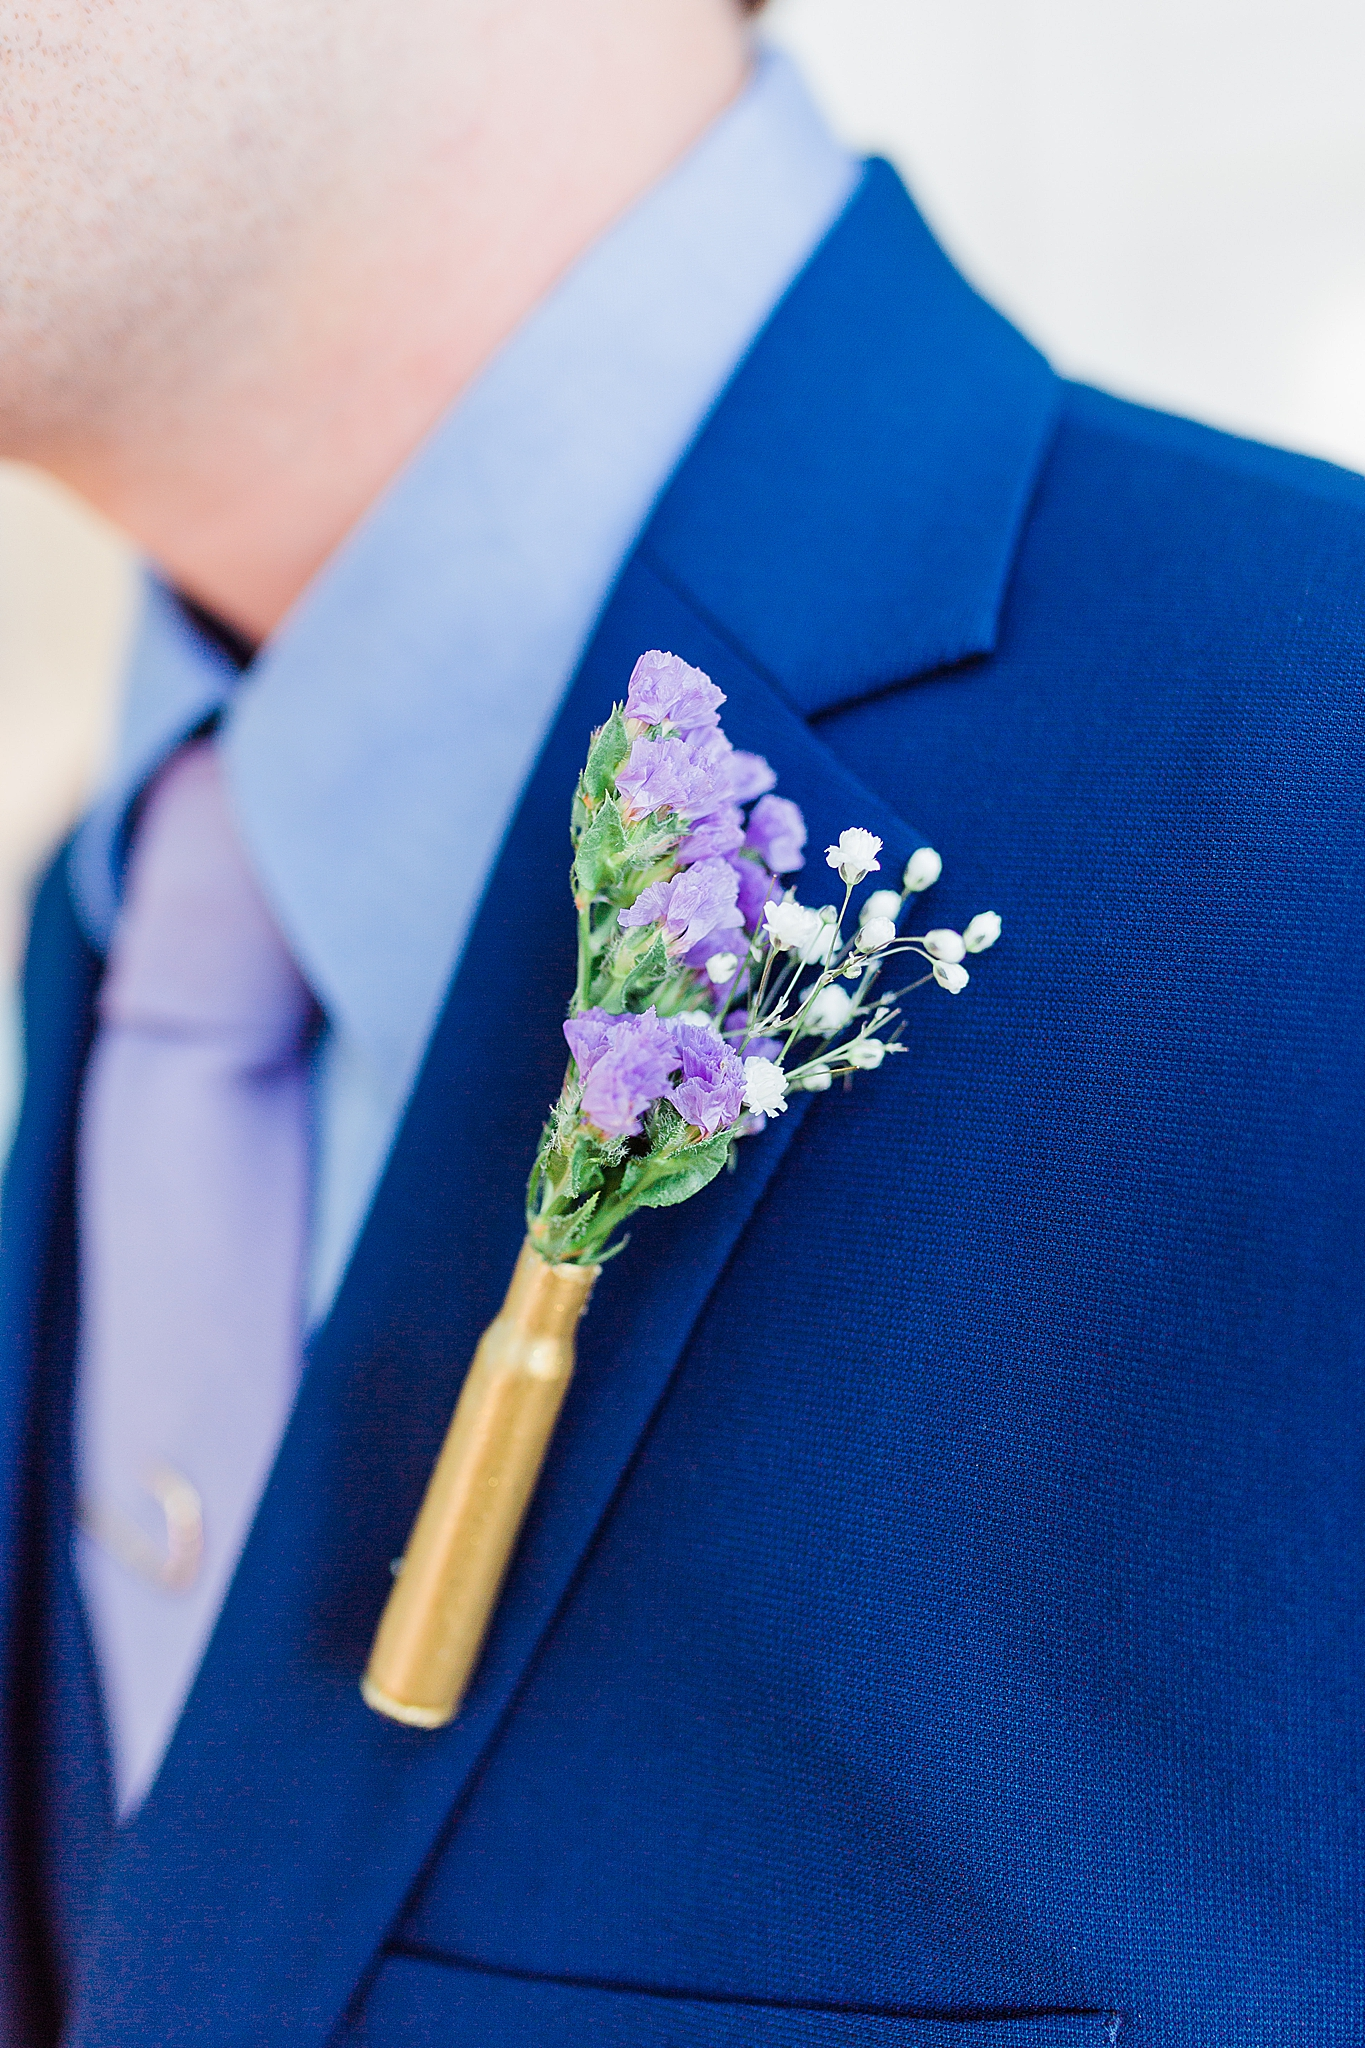 groom's purple floral boutineere on navy suit